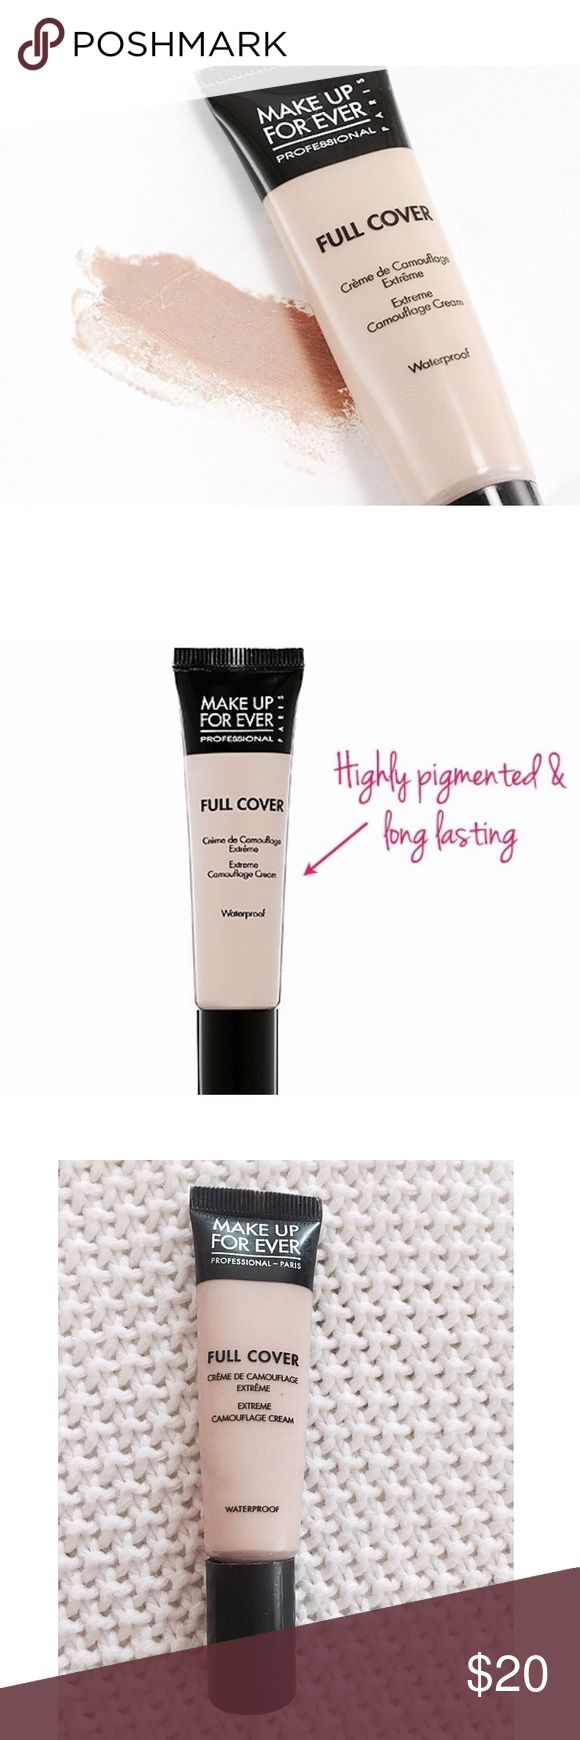 "Makeup Forever Full Cover Concealer Make up Forever's award winning full cover concealer. Extreme pigmentation gives complete coverage of any imperfection ⚜ I've used this a few times but it has most of the product inside still. The shade is ""1"" which is their lightest shade. Makeup Forever Makeup Concealer"